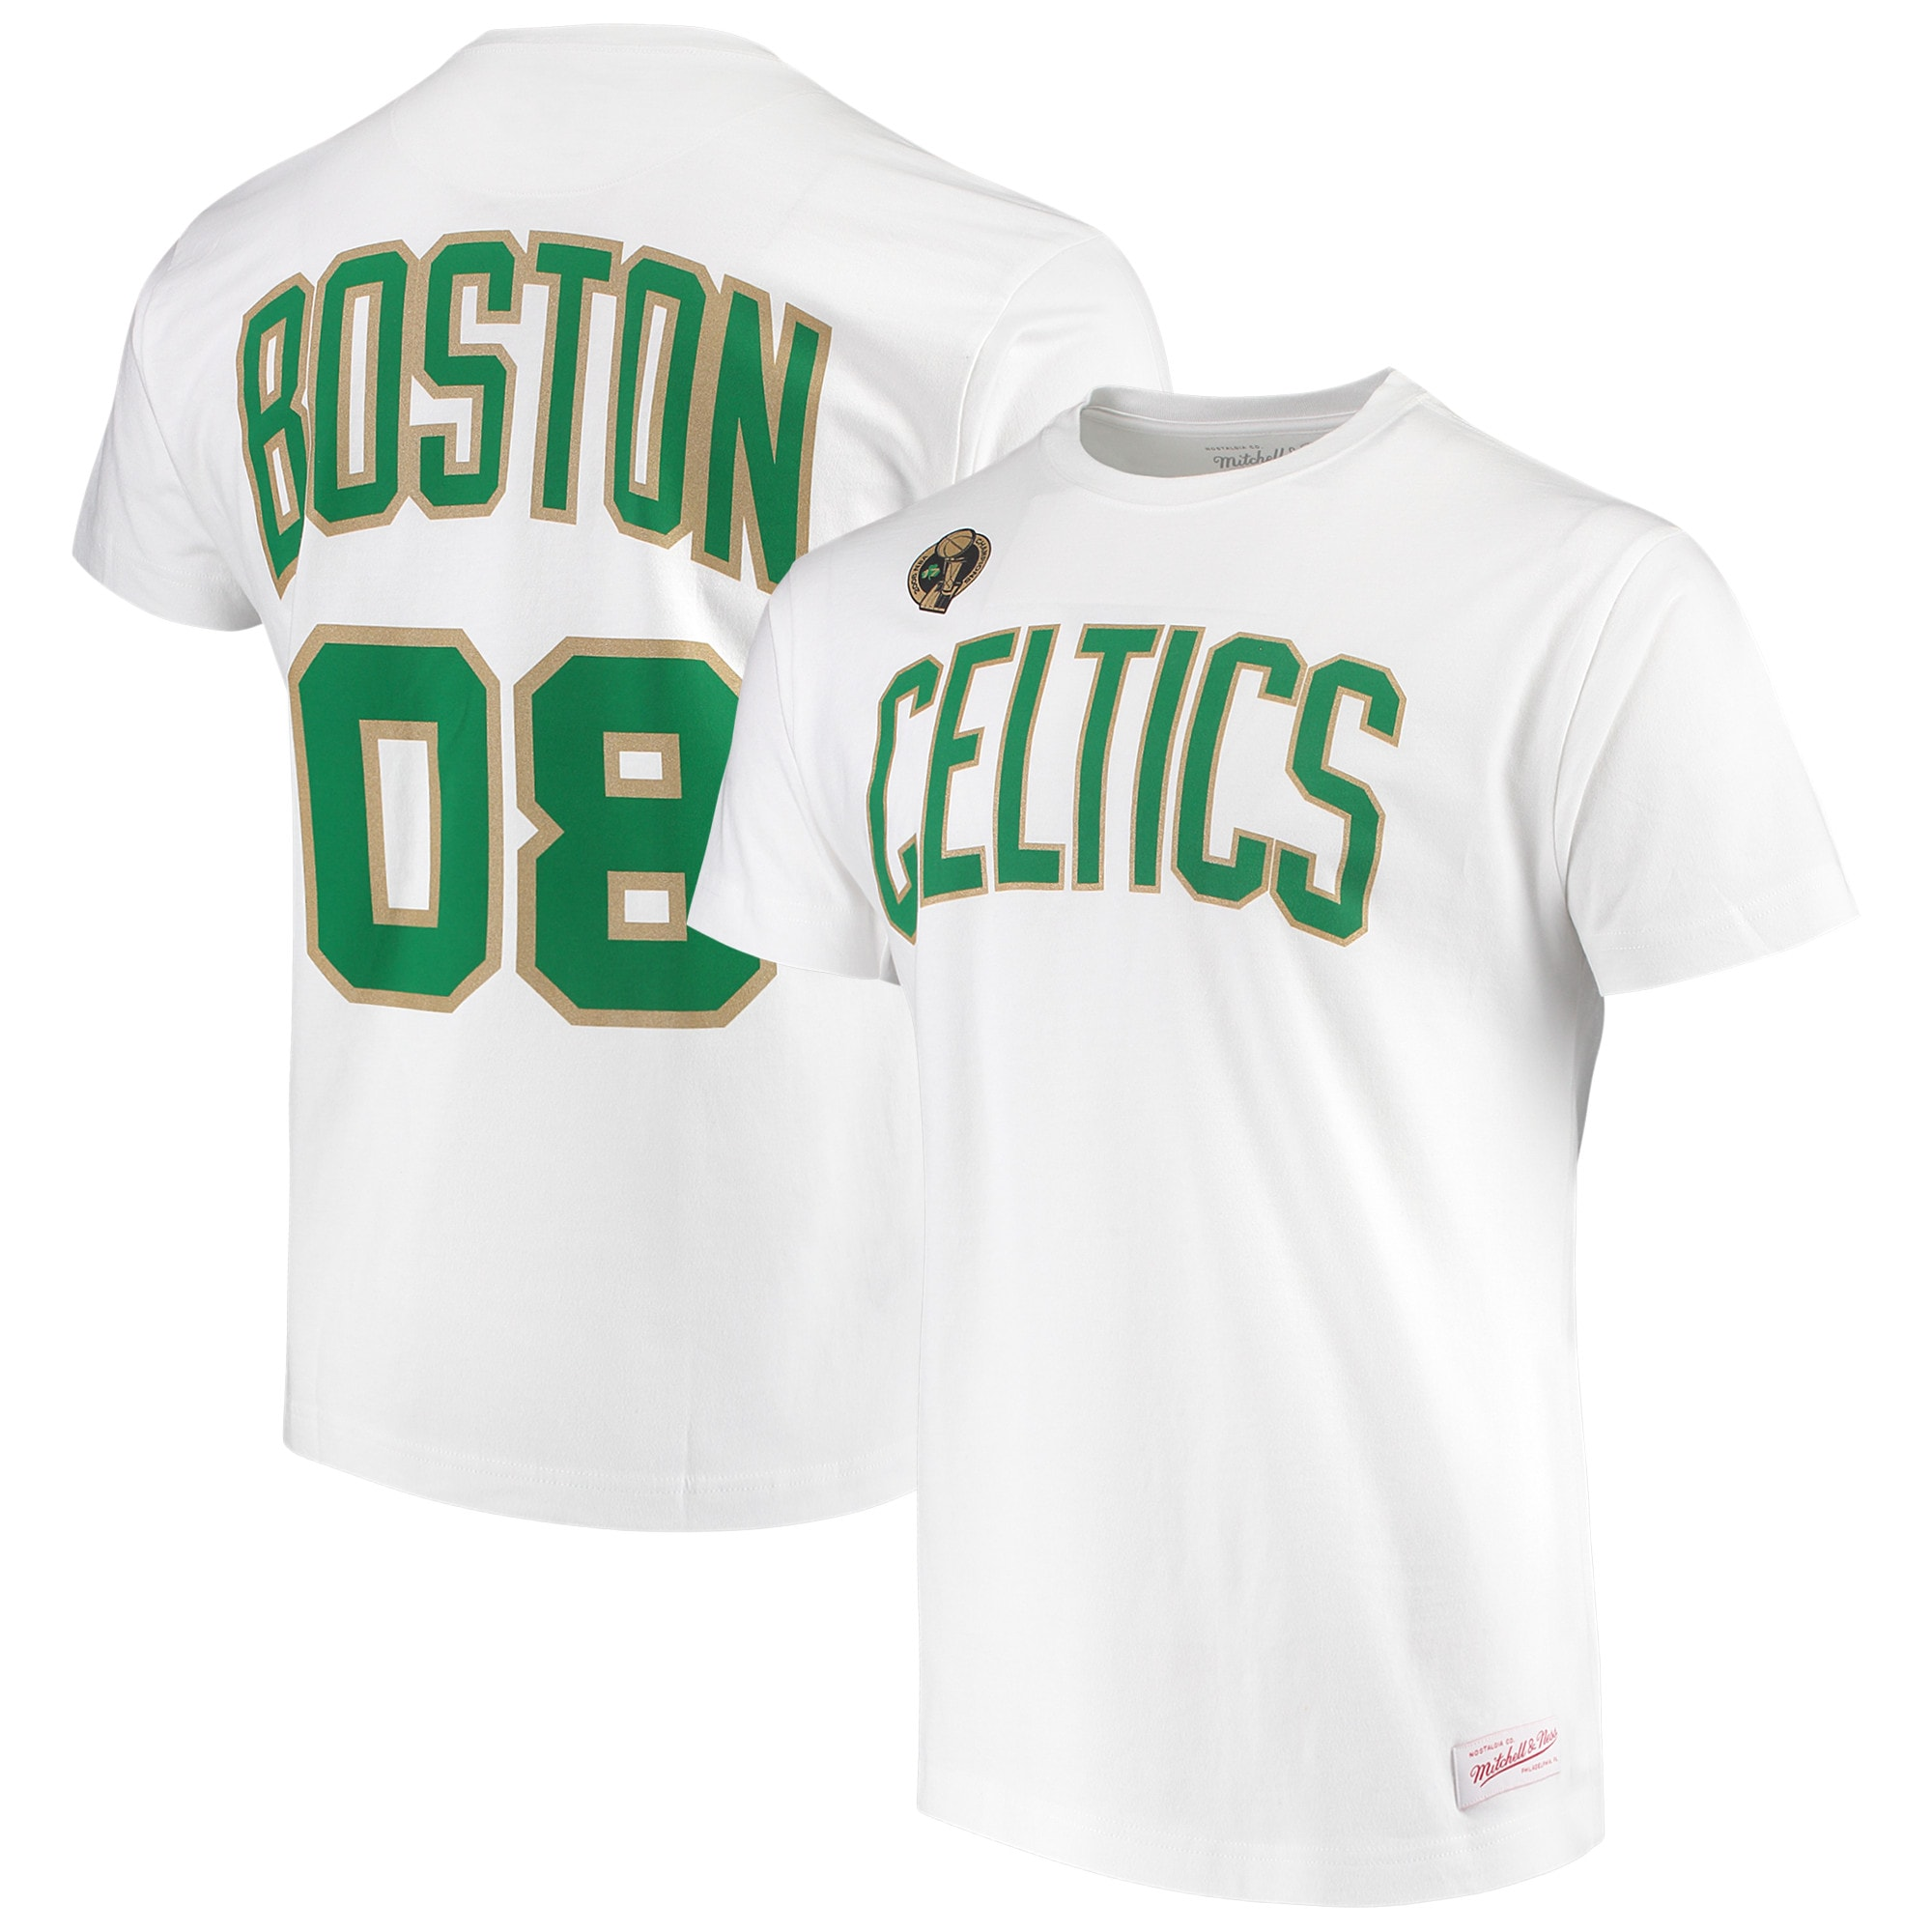 Boston Celtics Mitchell & Ness Hardwood Classics '08 NBA Champs Metallic Gold T-Shirt - White